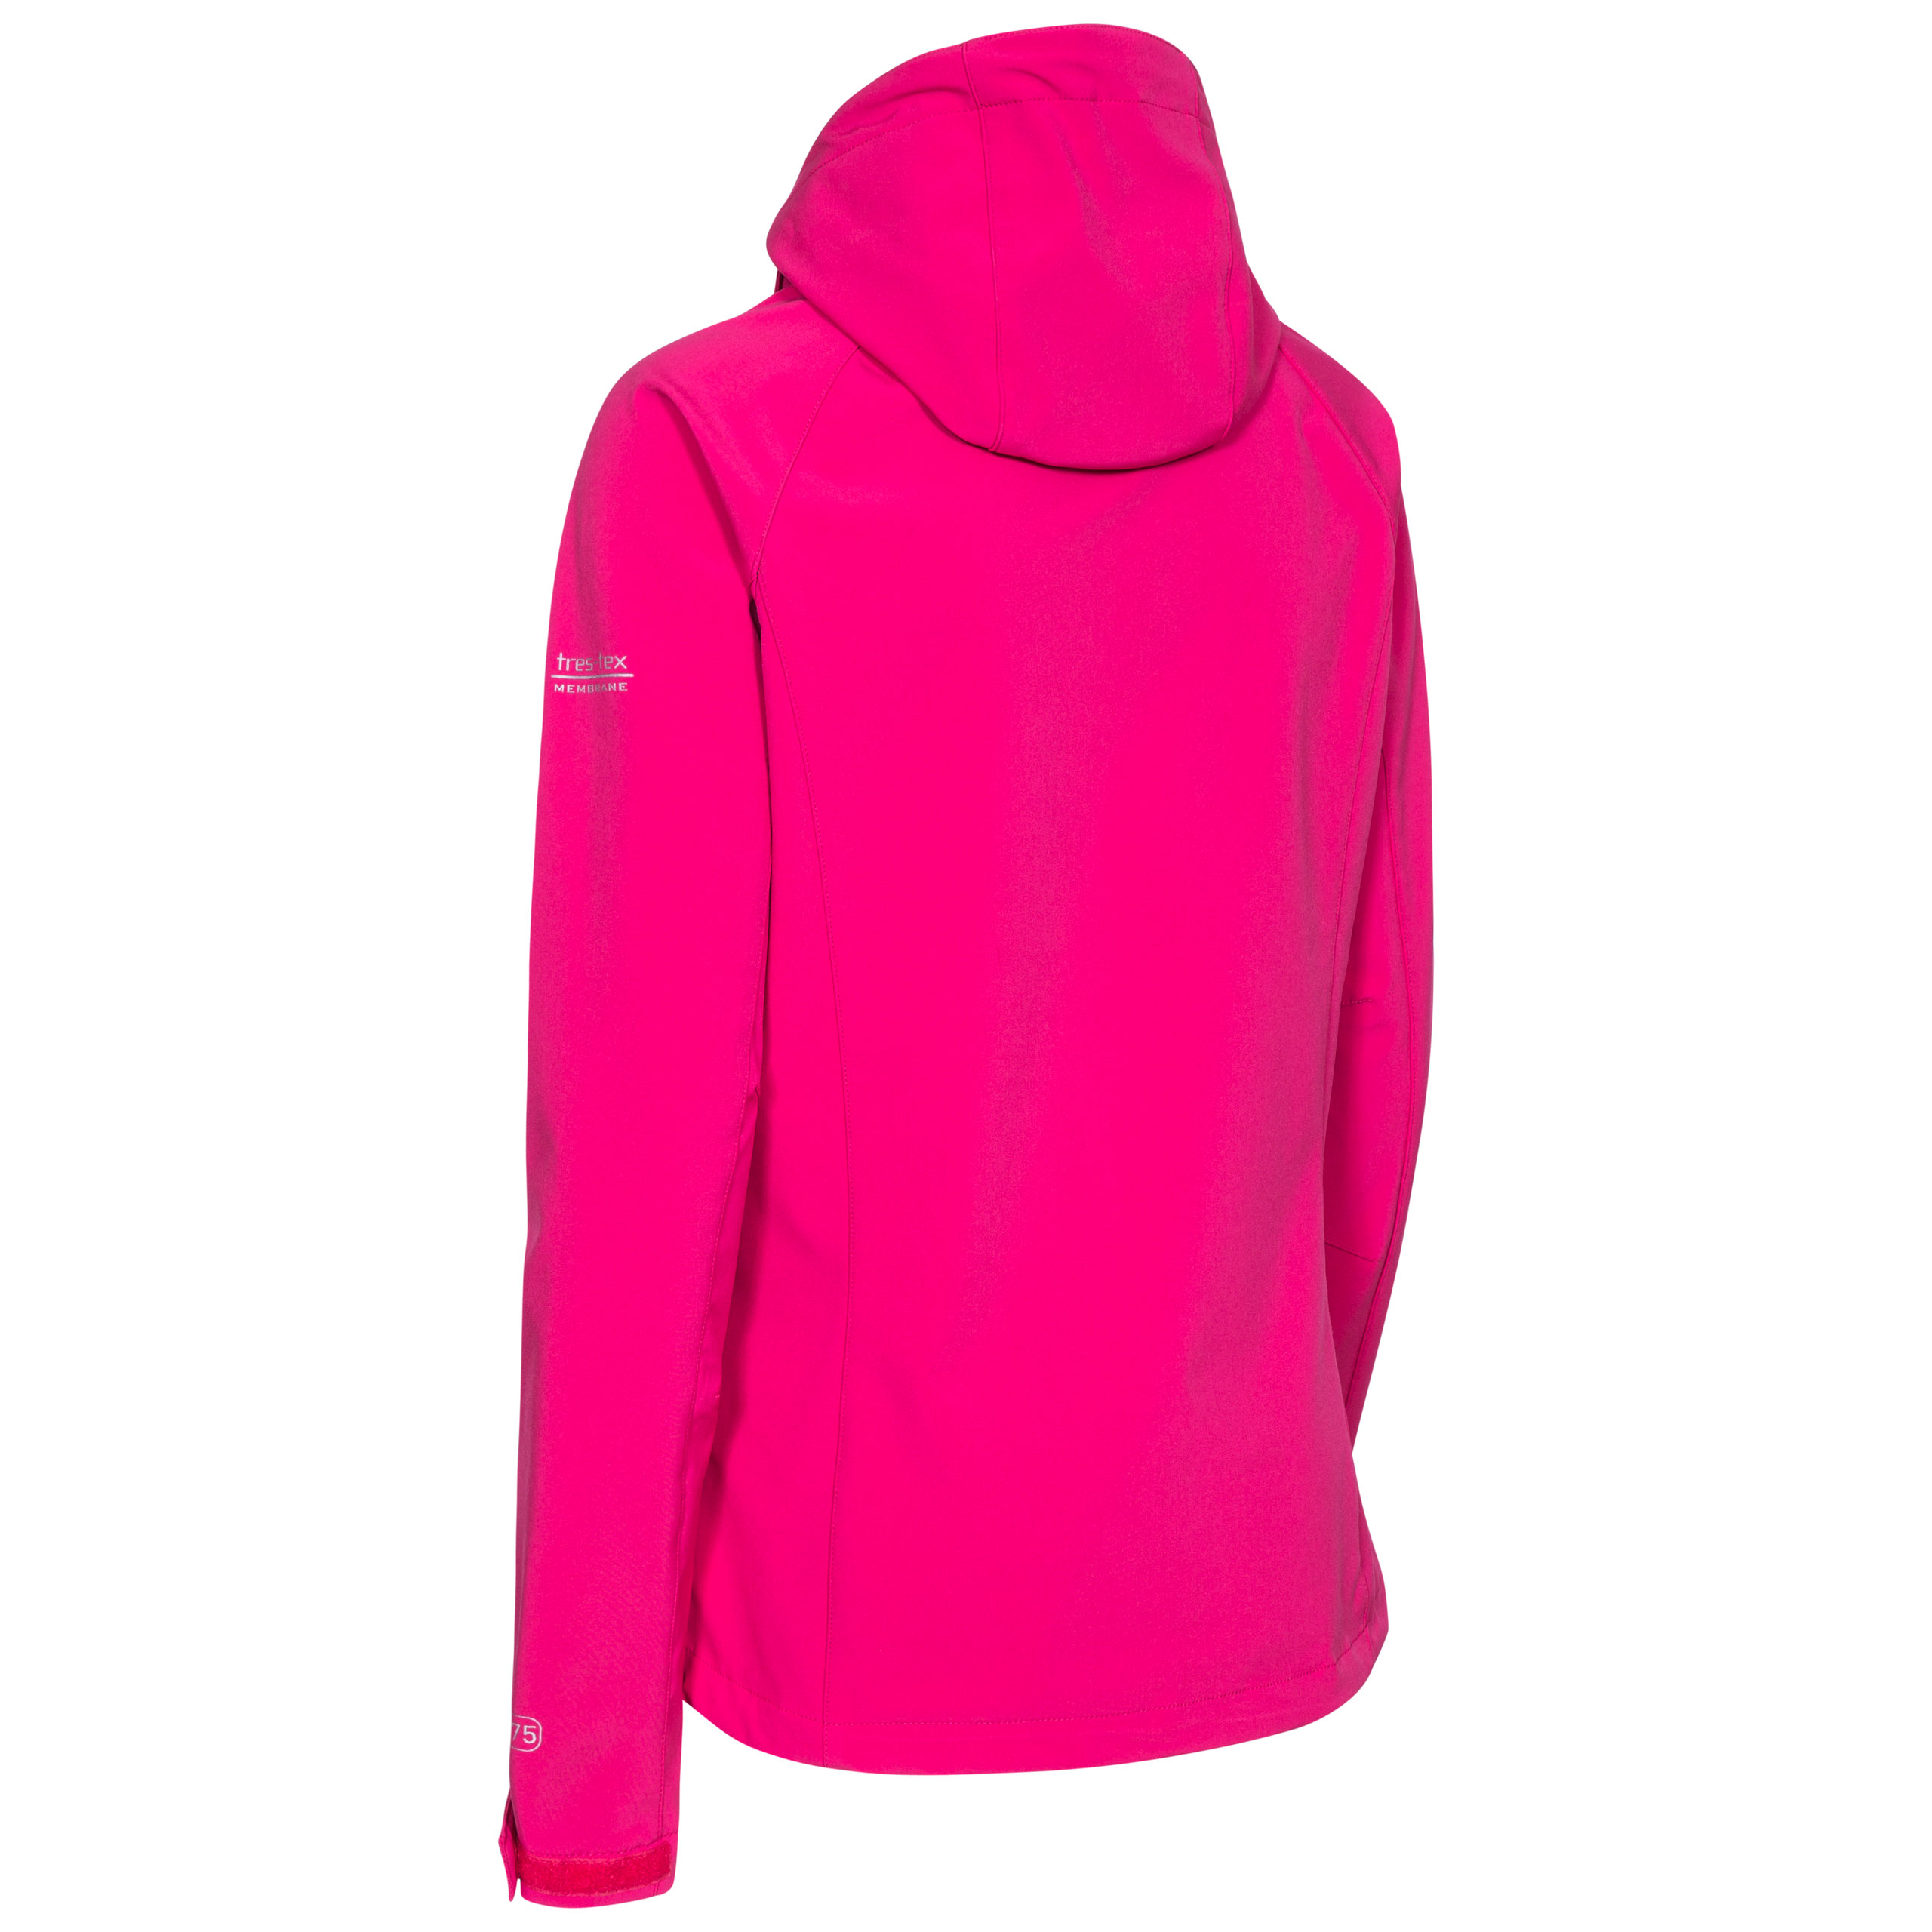 Trespass-Lorina-Women-Softshell-Jacket-Waterproof-Windproof-and-Breathable thumbnail 17